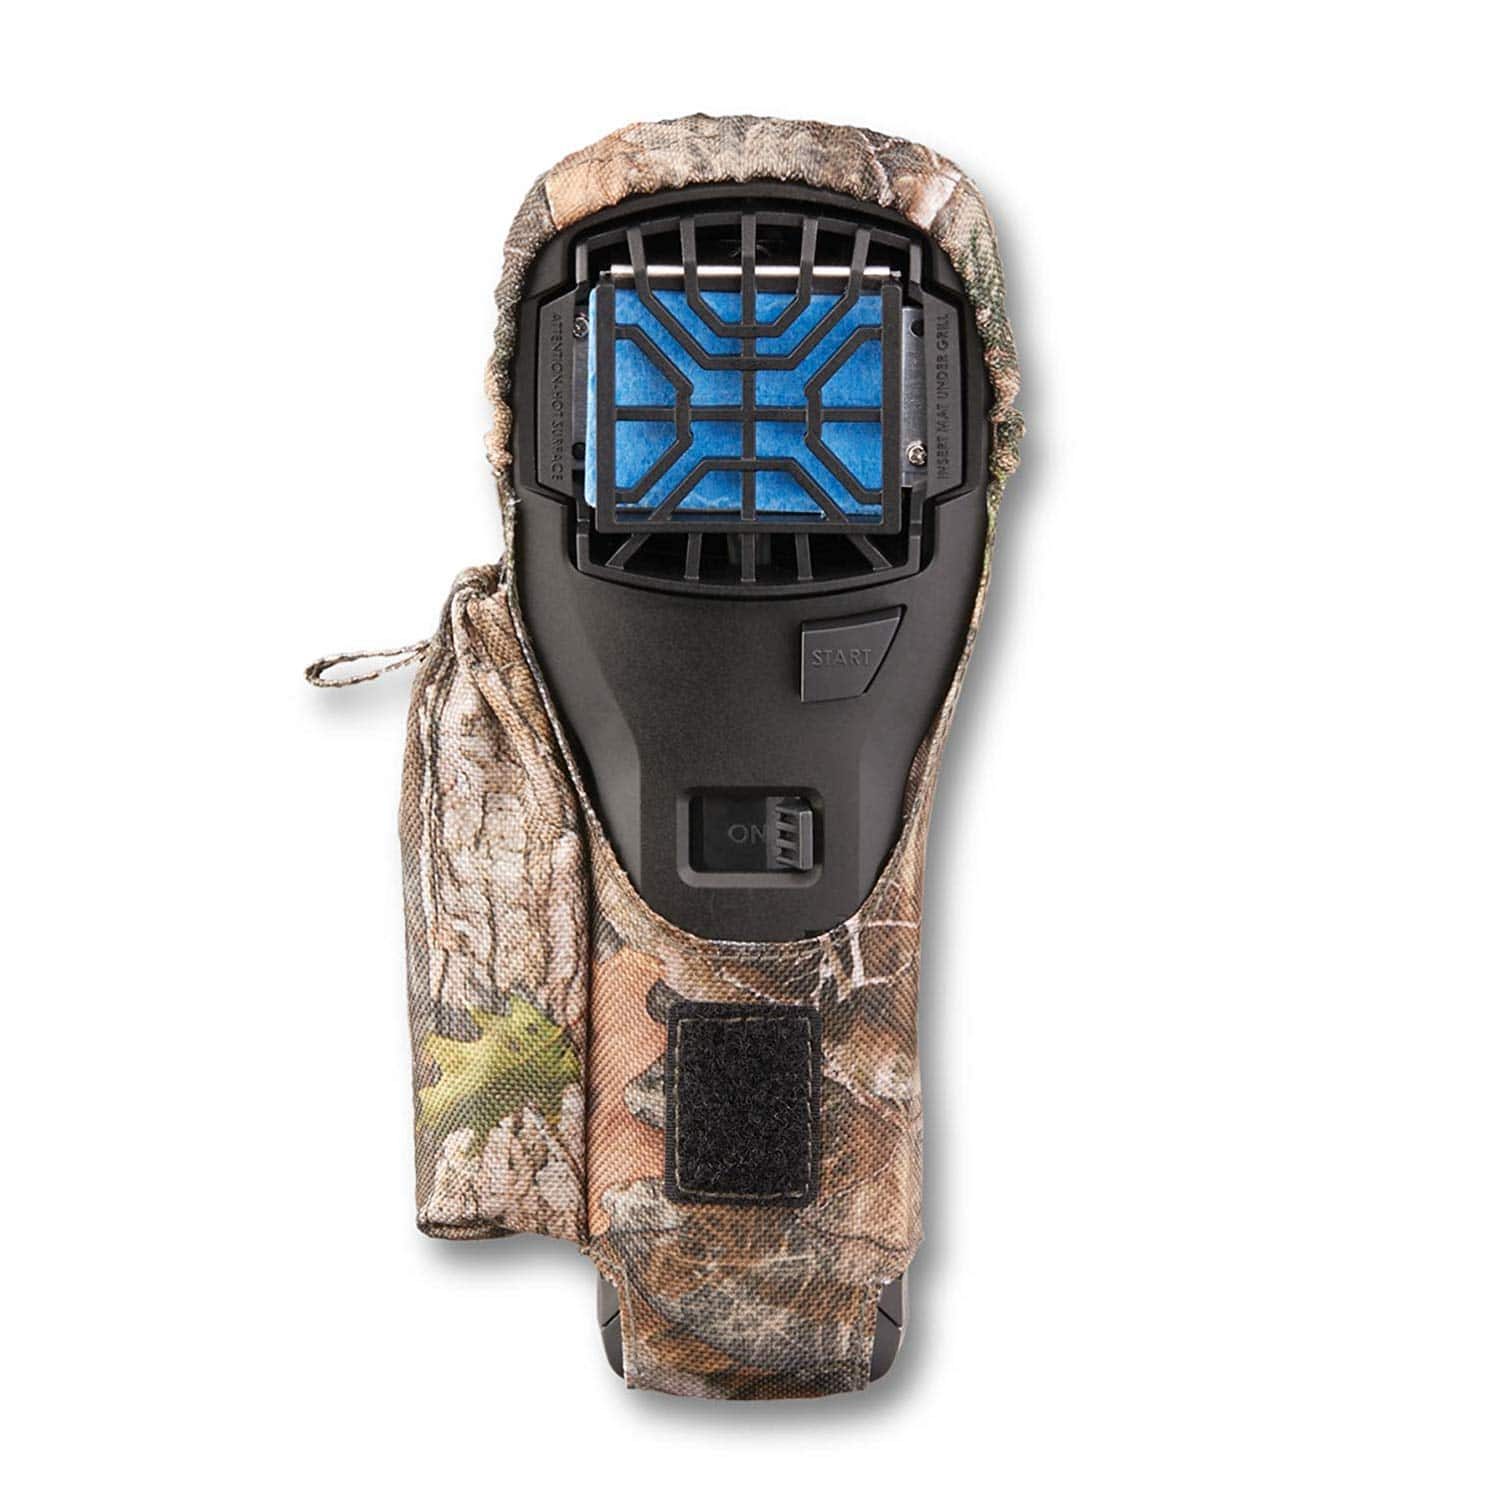 Thermacell MR300F (Black) with Camo Holster $19.11